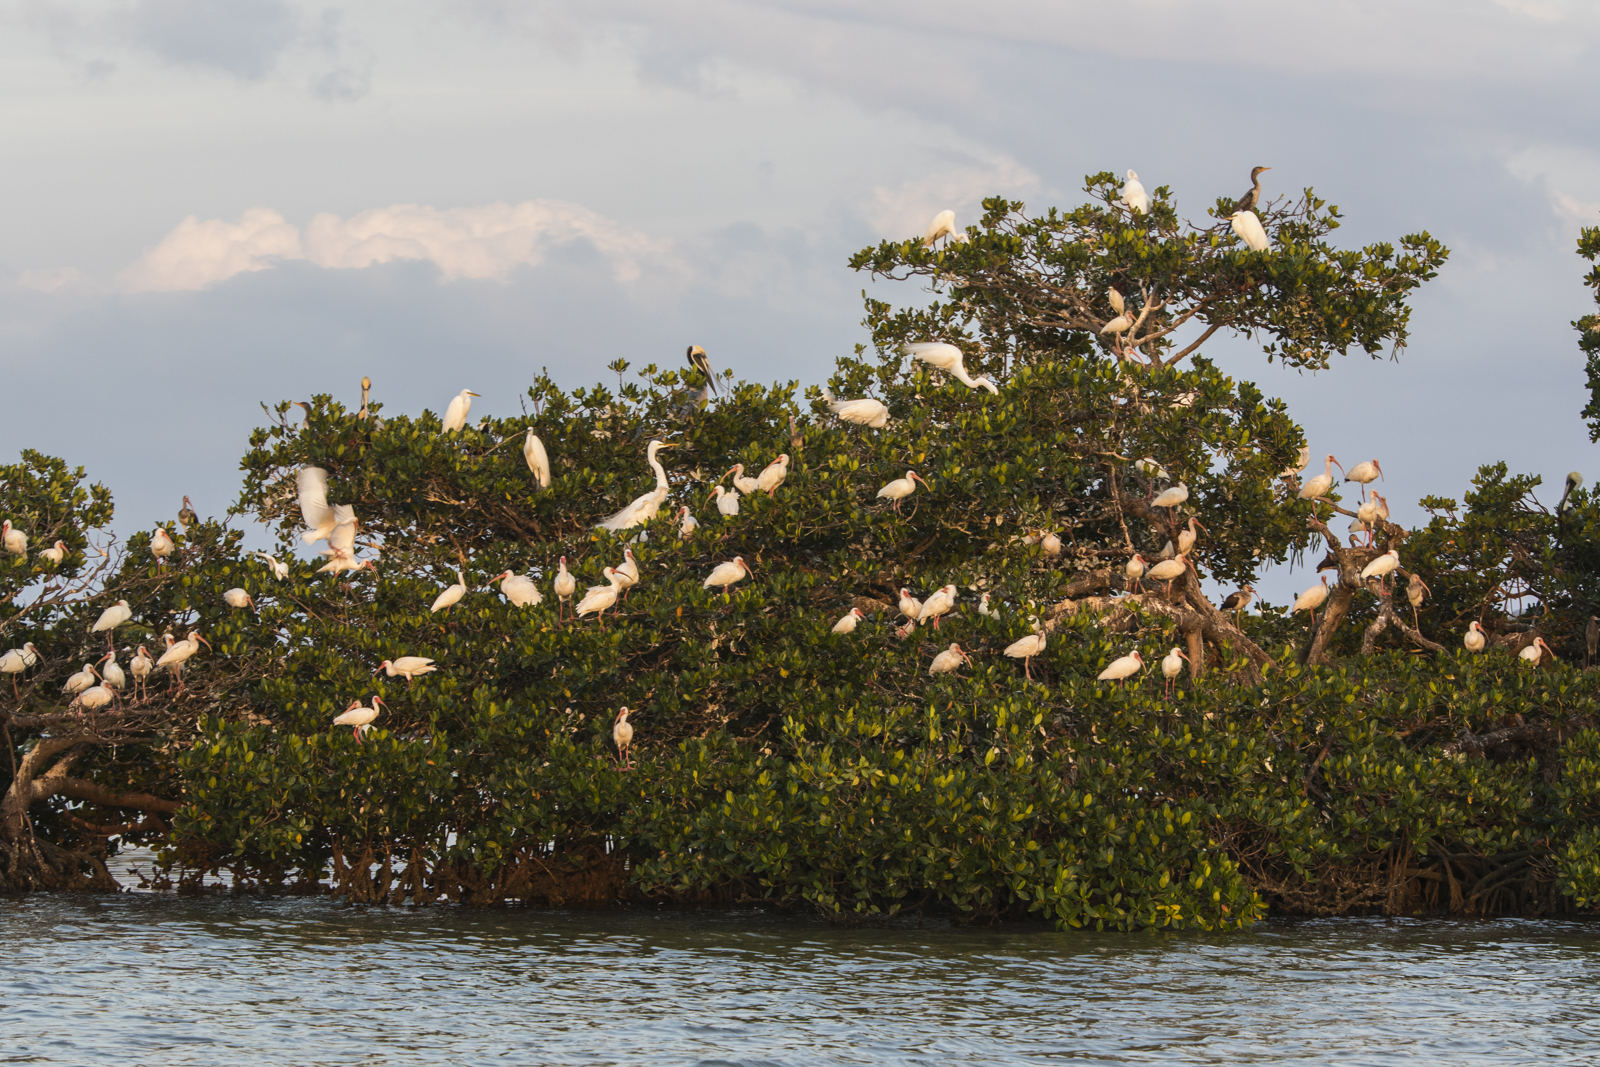 One of several mangrove islands filled with birds coming to roost at sunset